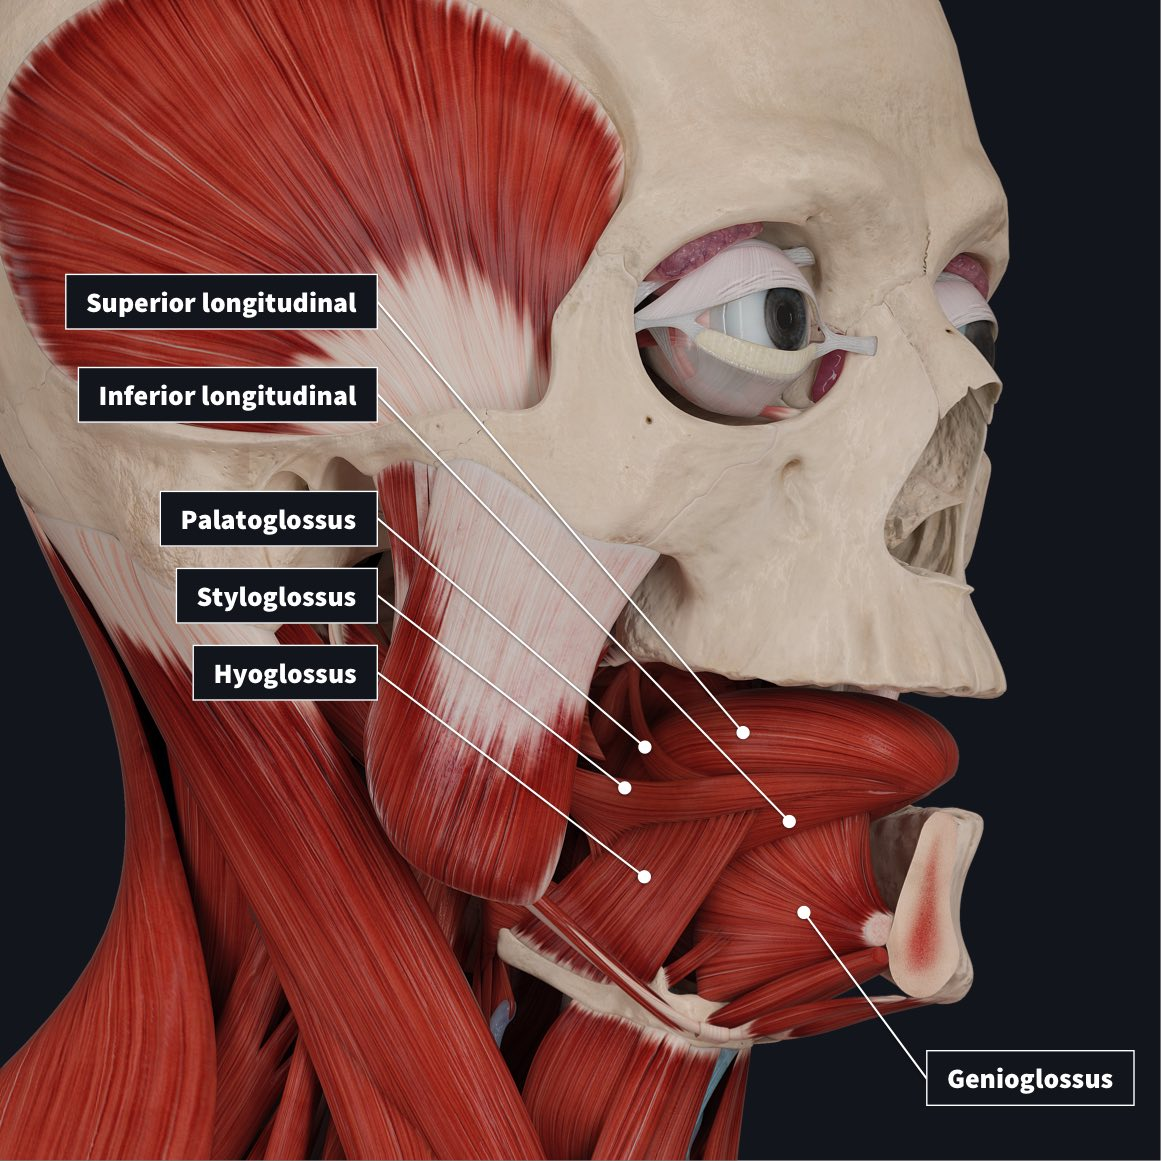 extrinsic muscles of tongue